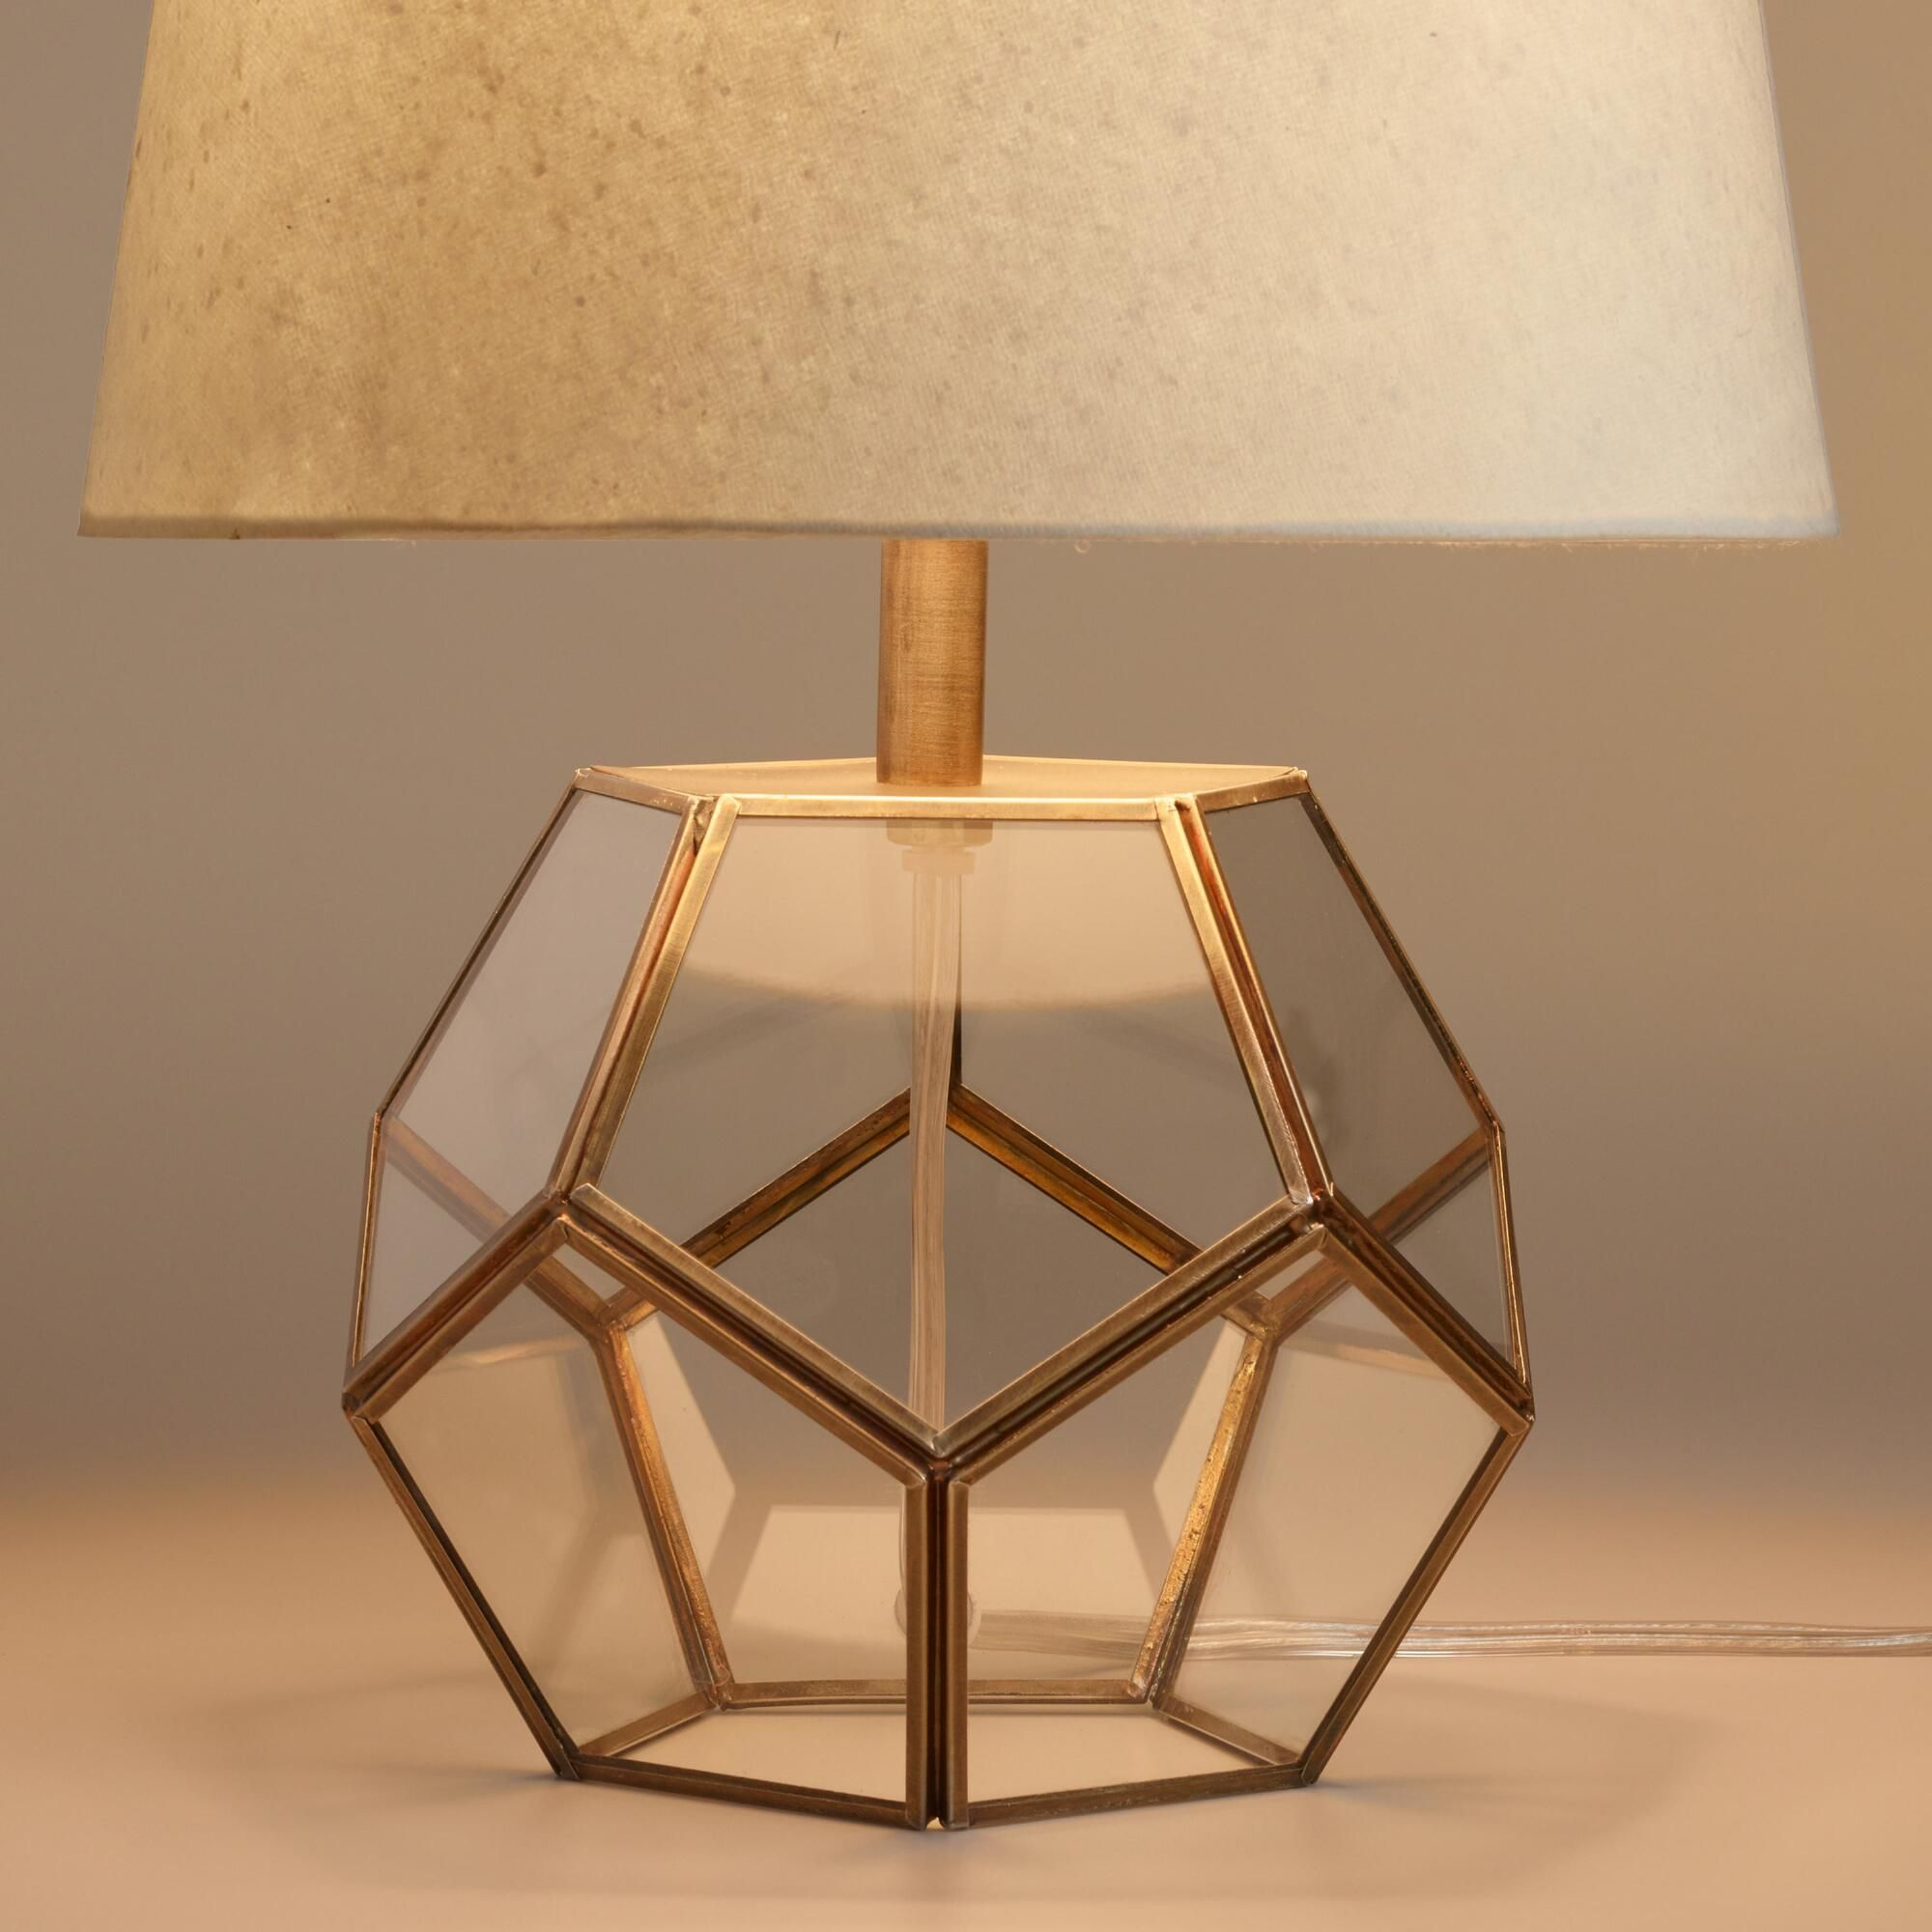 With precision cut glass panes fitted to an antique brass finish with precision cut glass panes fitted to an antique brass finish frame our exclusive hexagon table lamp brings geometric flair to the table mozeypictures Gallery